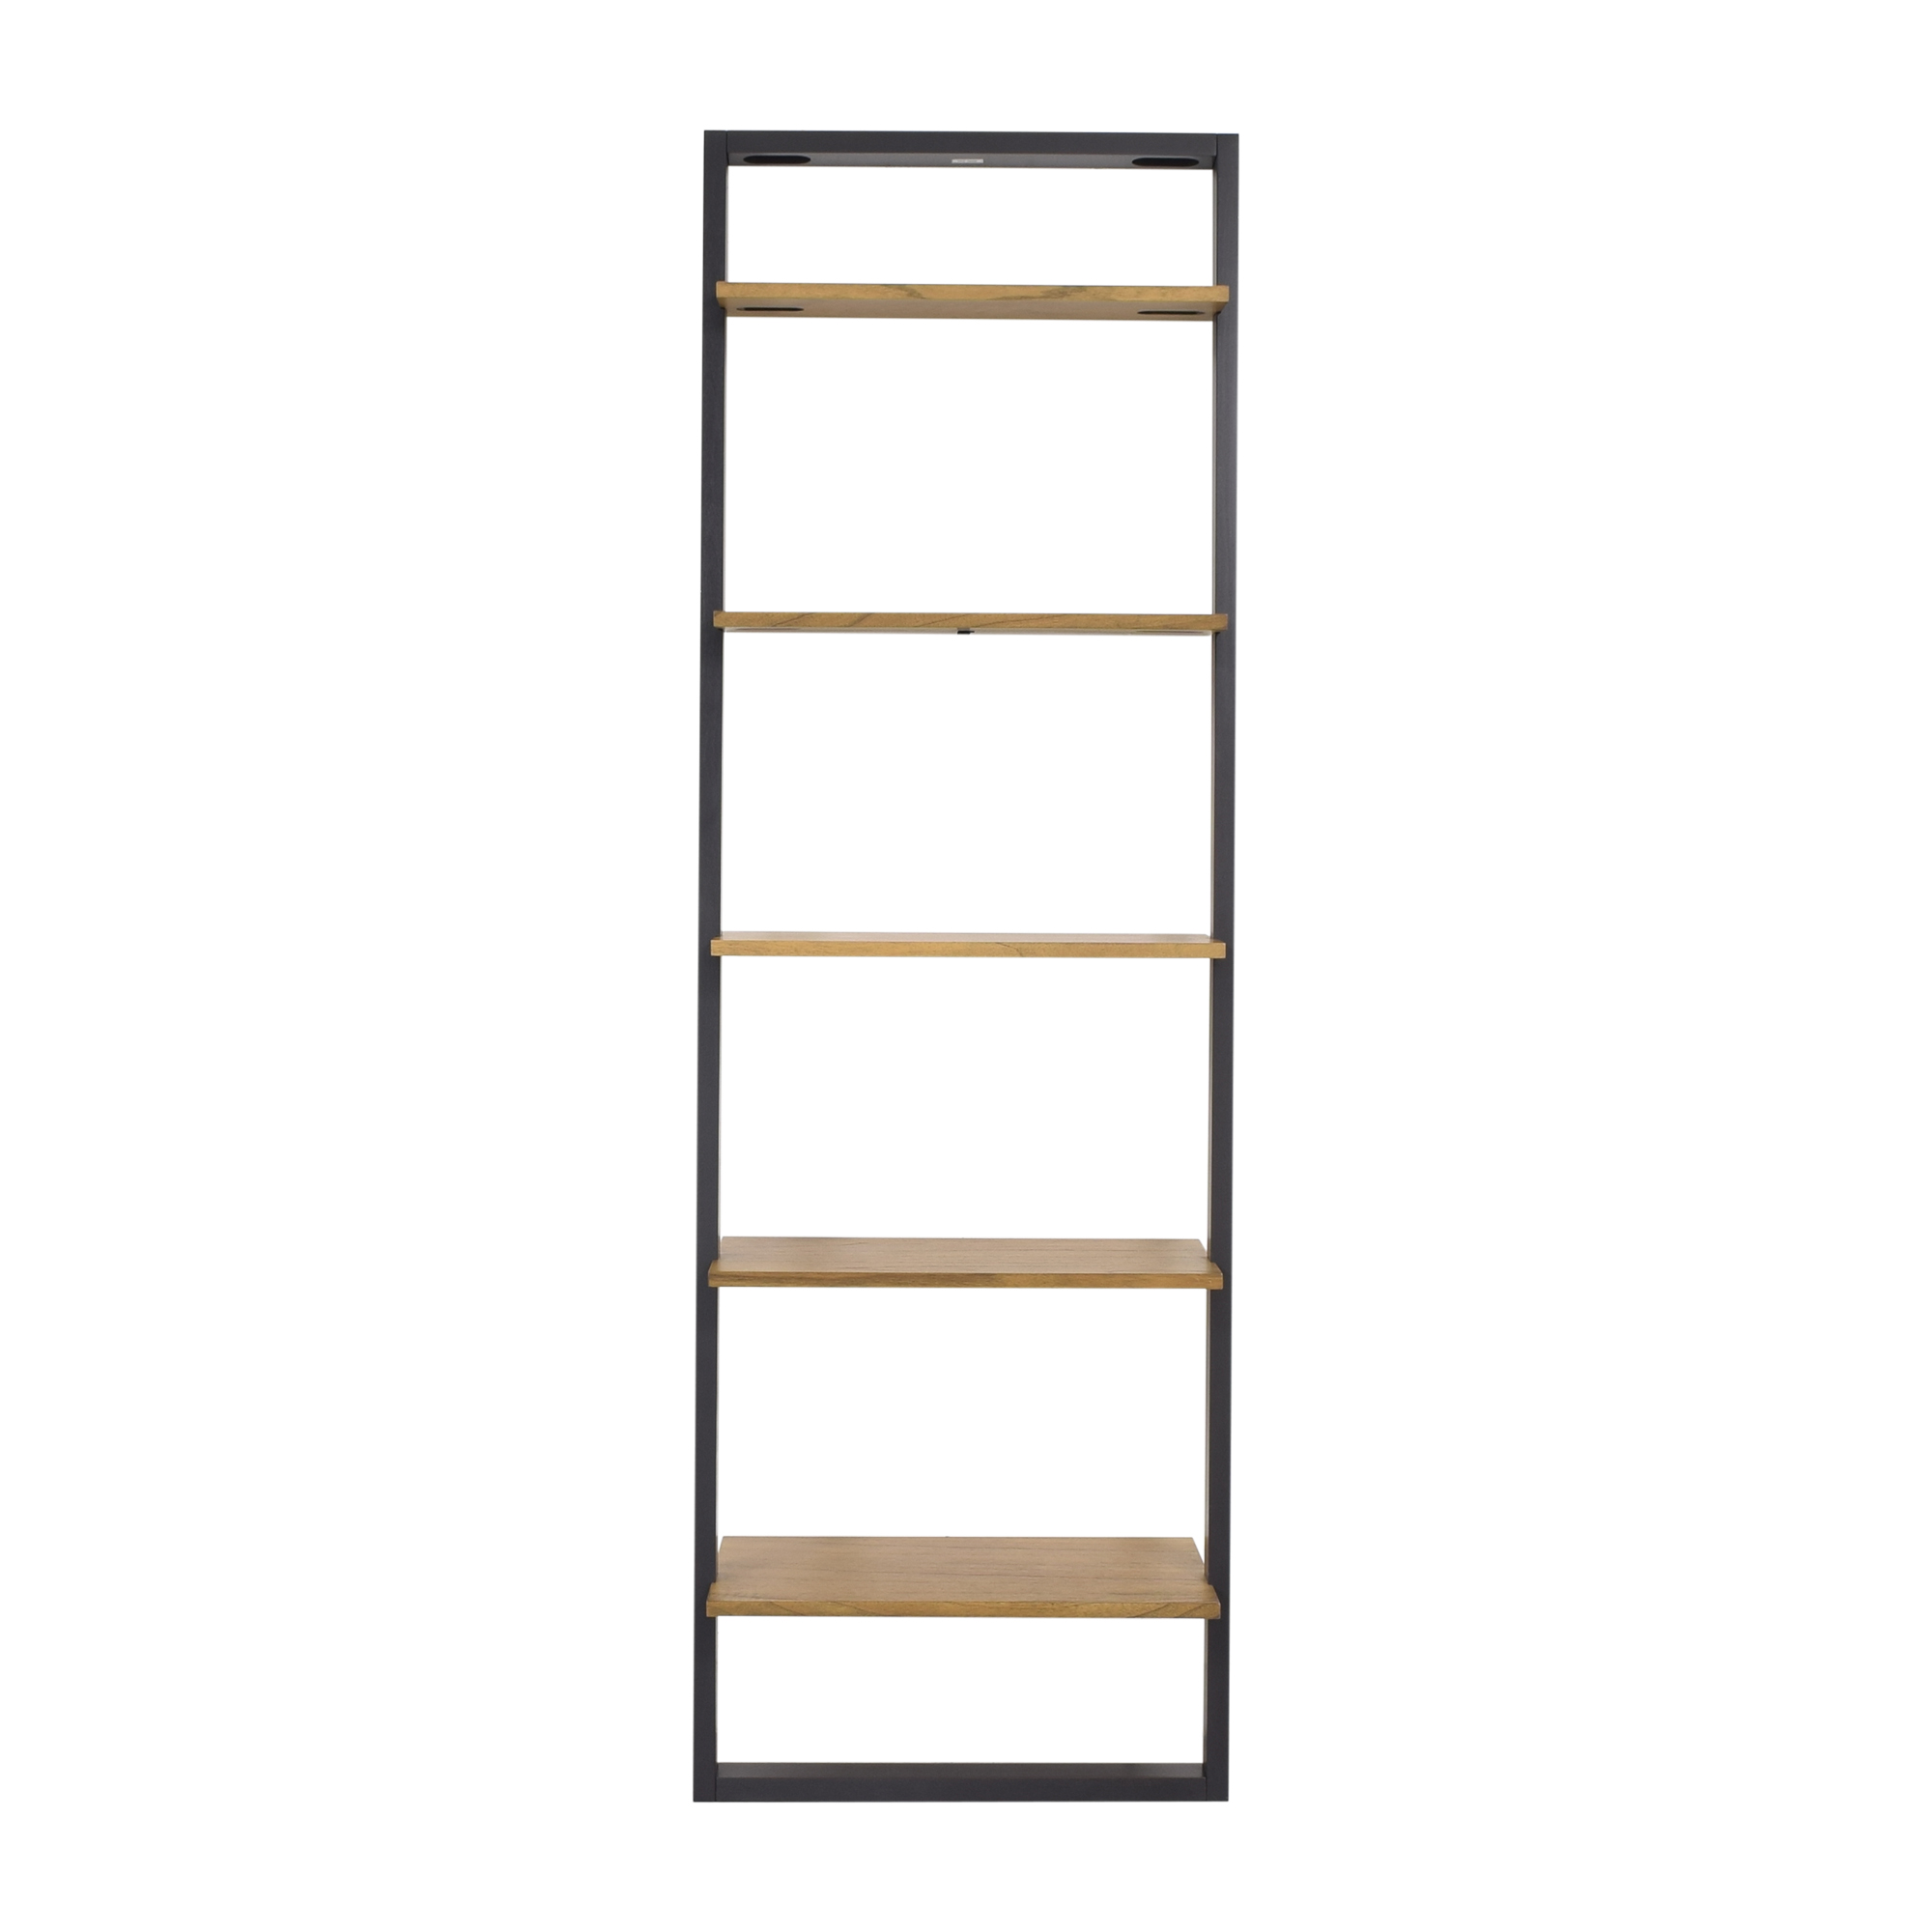 West Elm West Elm Wide Ladder Bookshelf dimensions